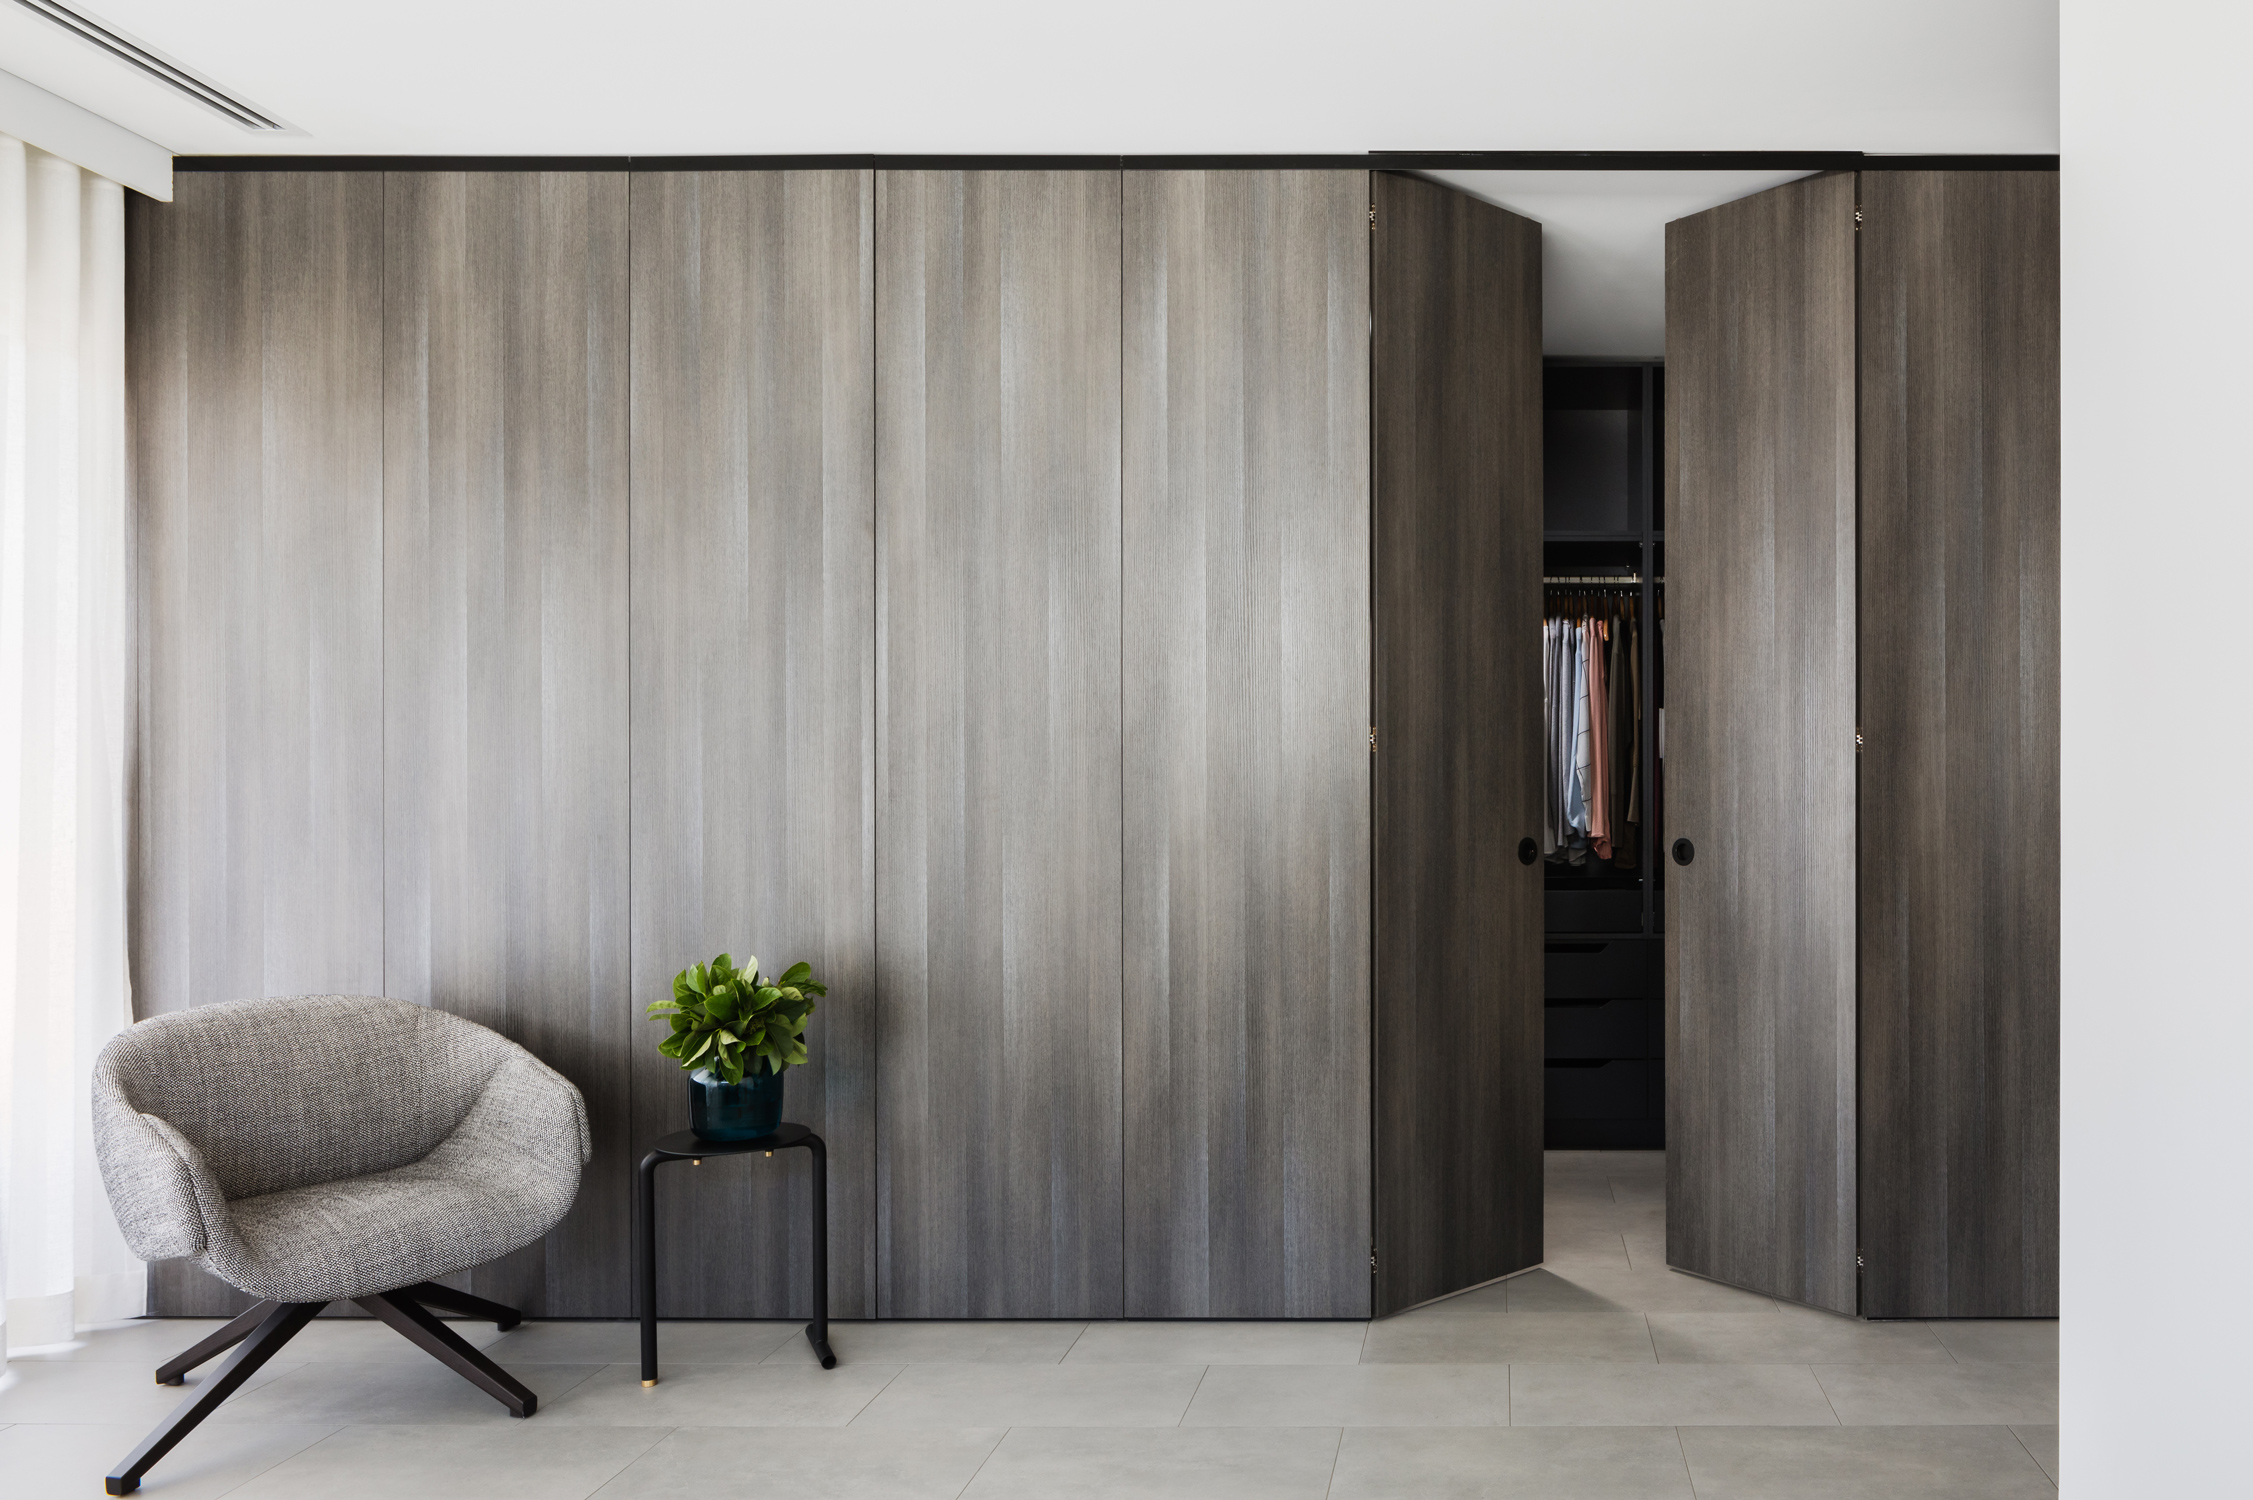 Broad Residence By Baldwin & Bagnall Local Kitchen Design And Interior Bathrooms Sydney,nsw Image 12